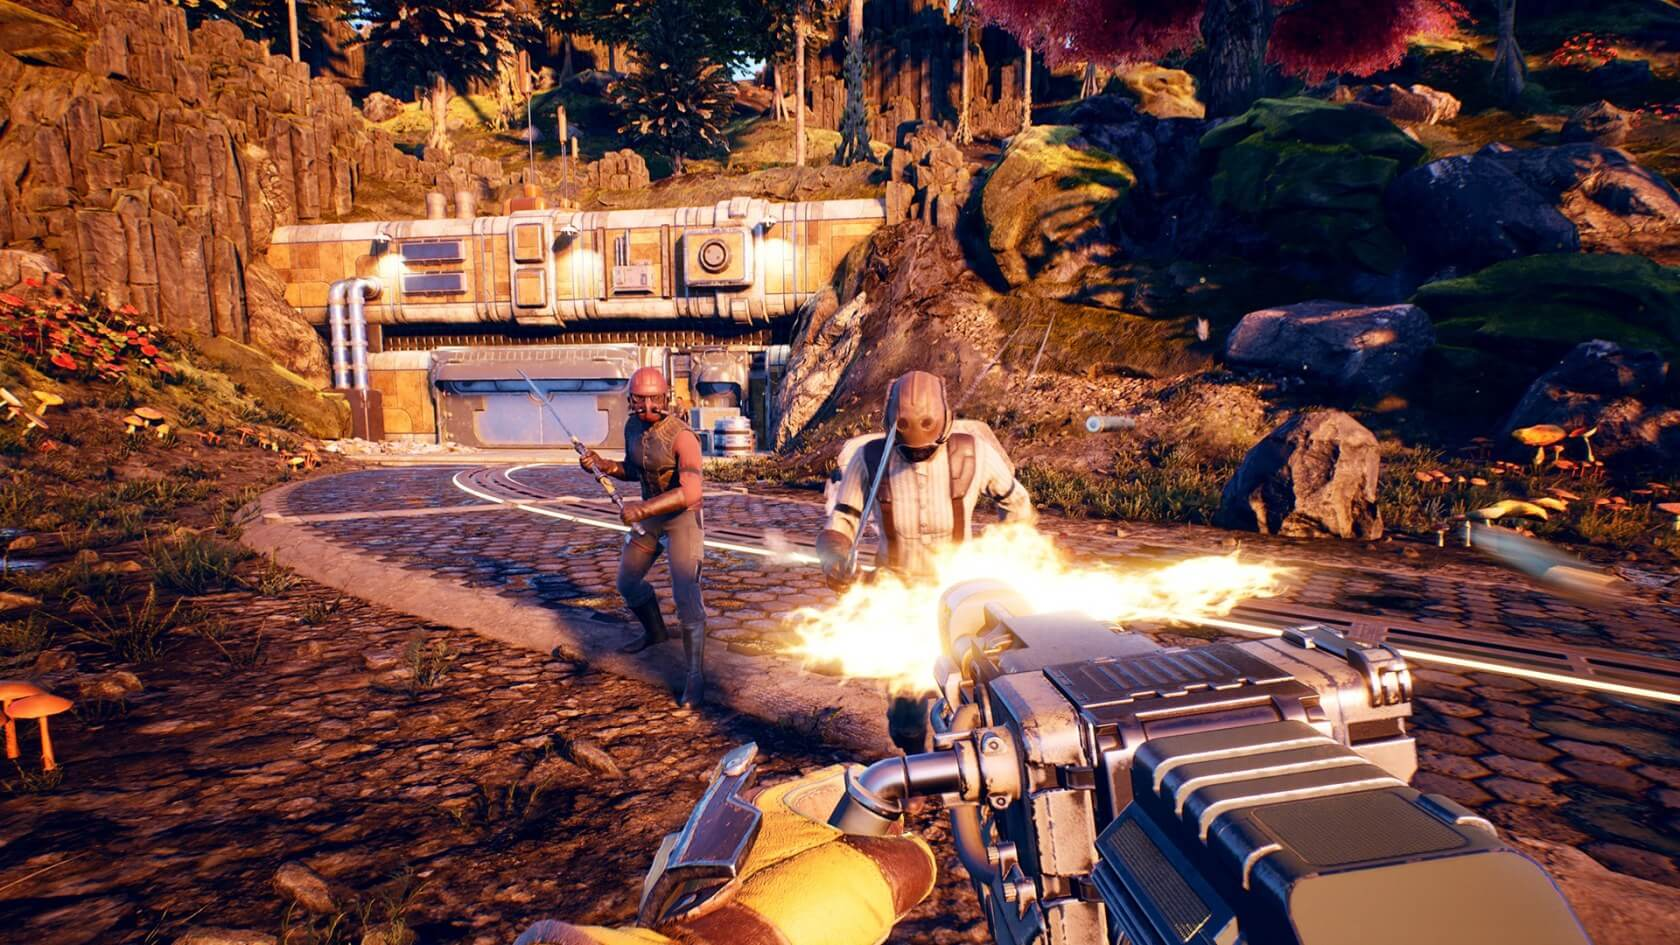 The Outer Worlds gameplay - Combat